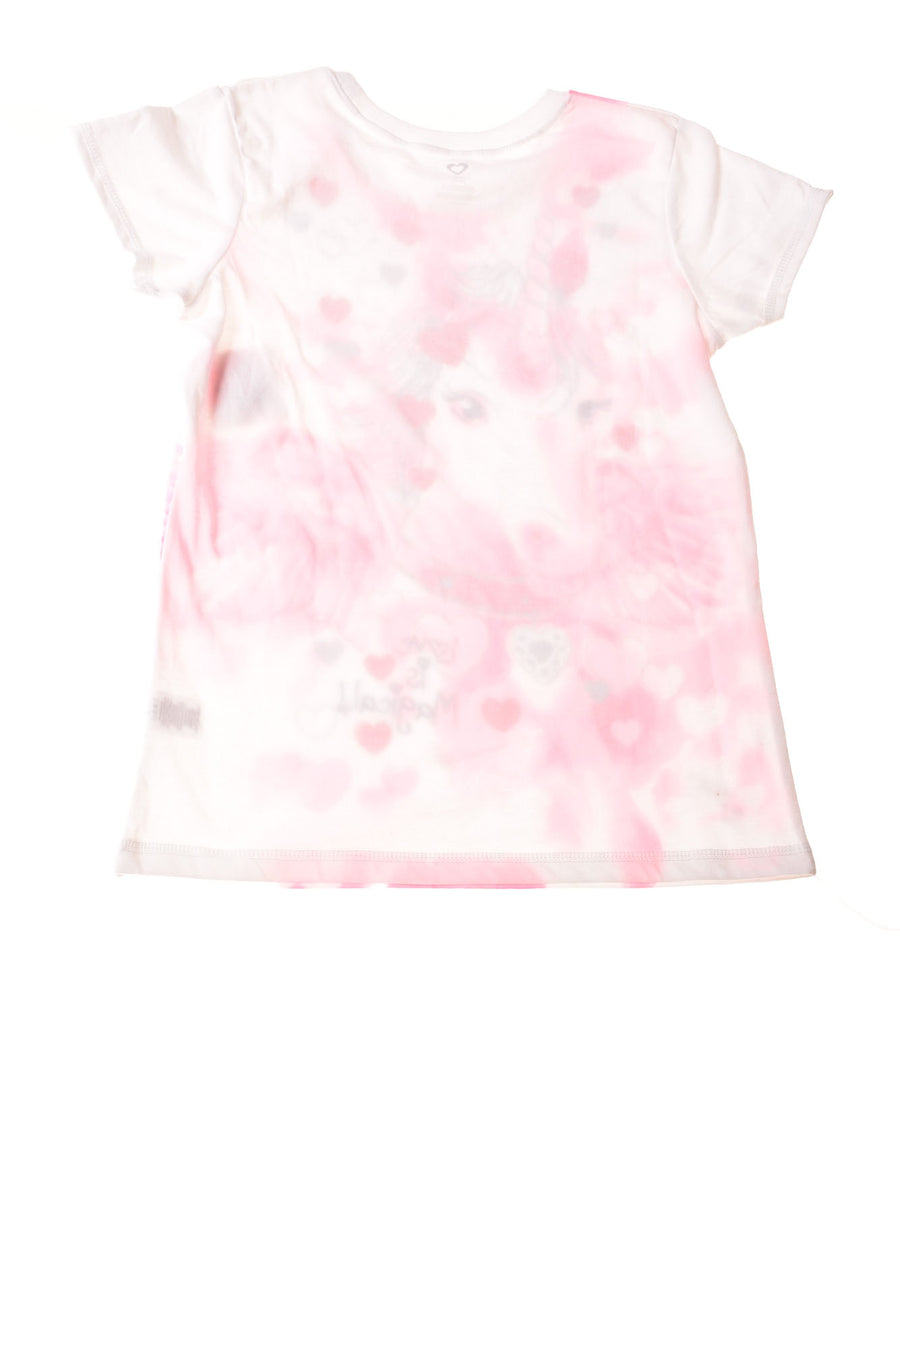 NEW No Brand Girl's Top 10-12 Pink & White & Red